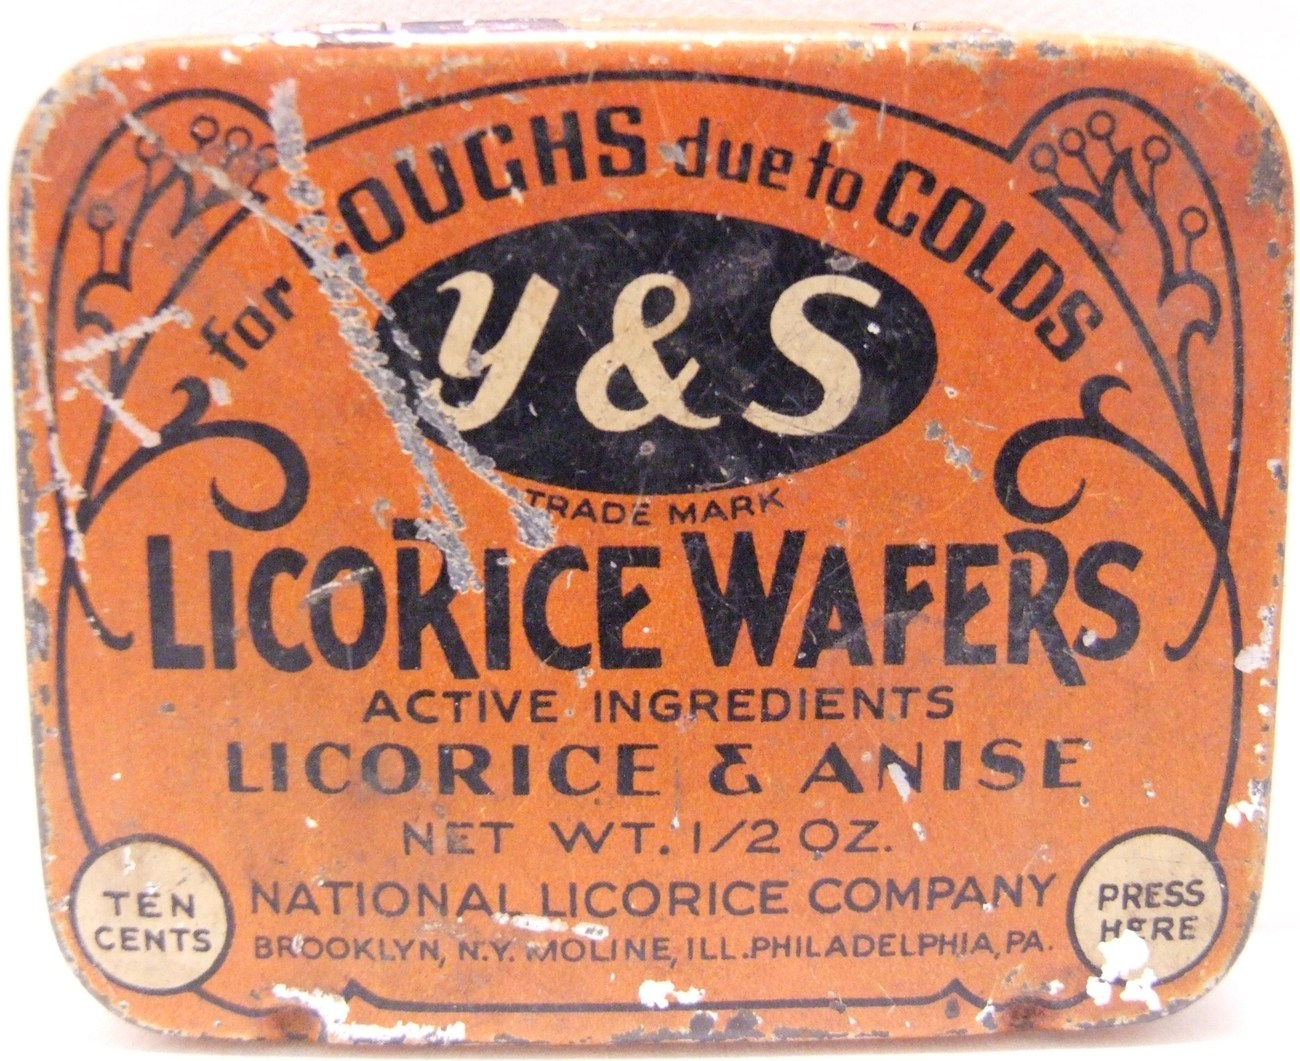 Vintage Y&S Licorice And Anise Wafers Tin Advertising Container